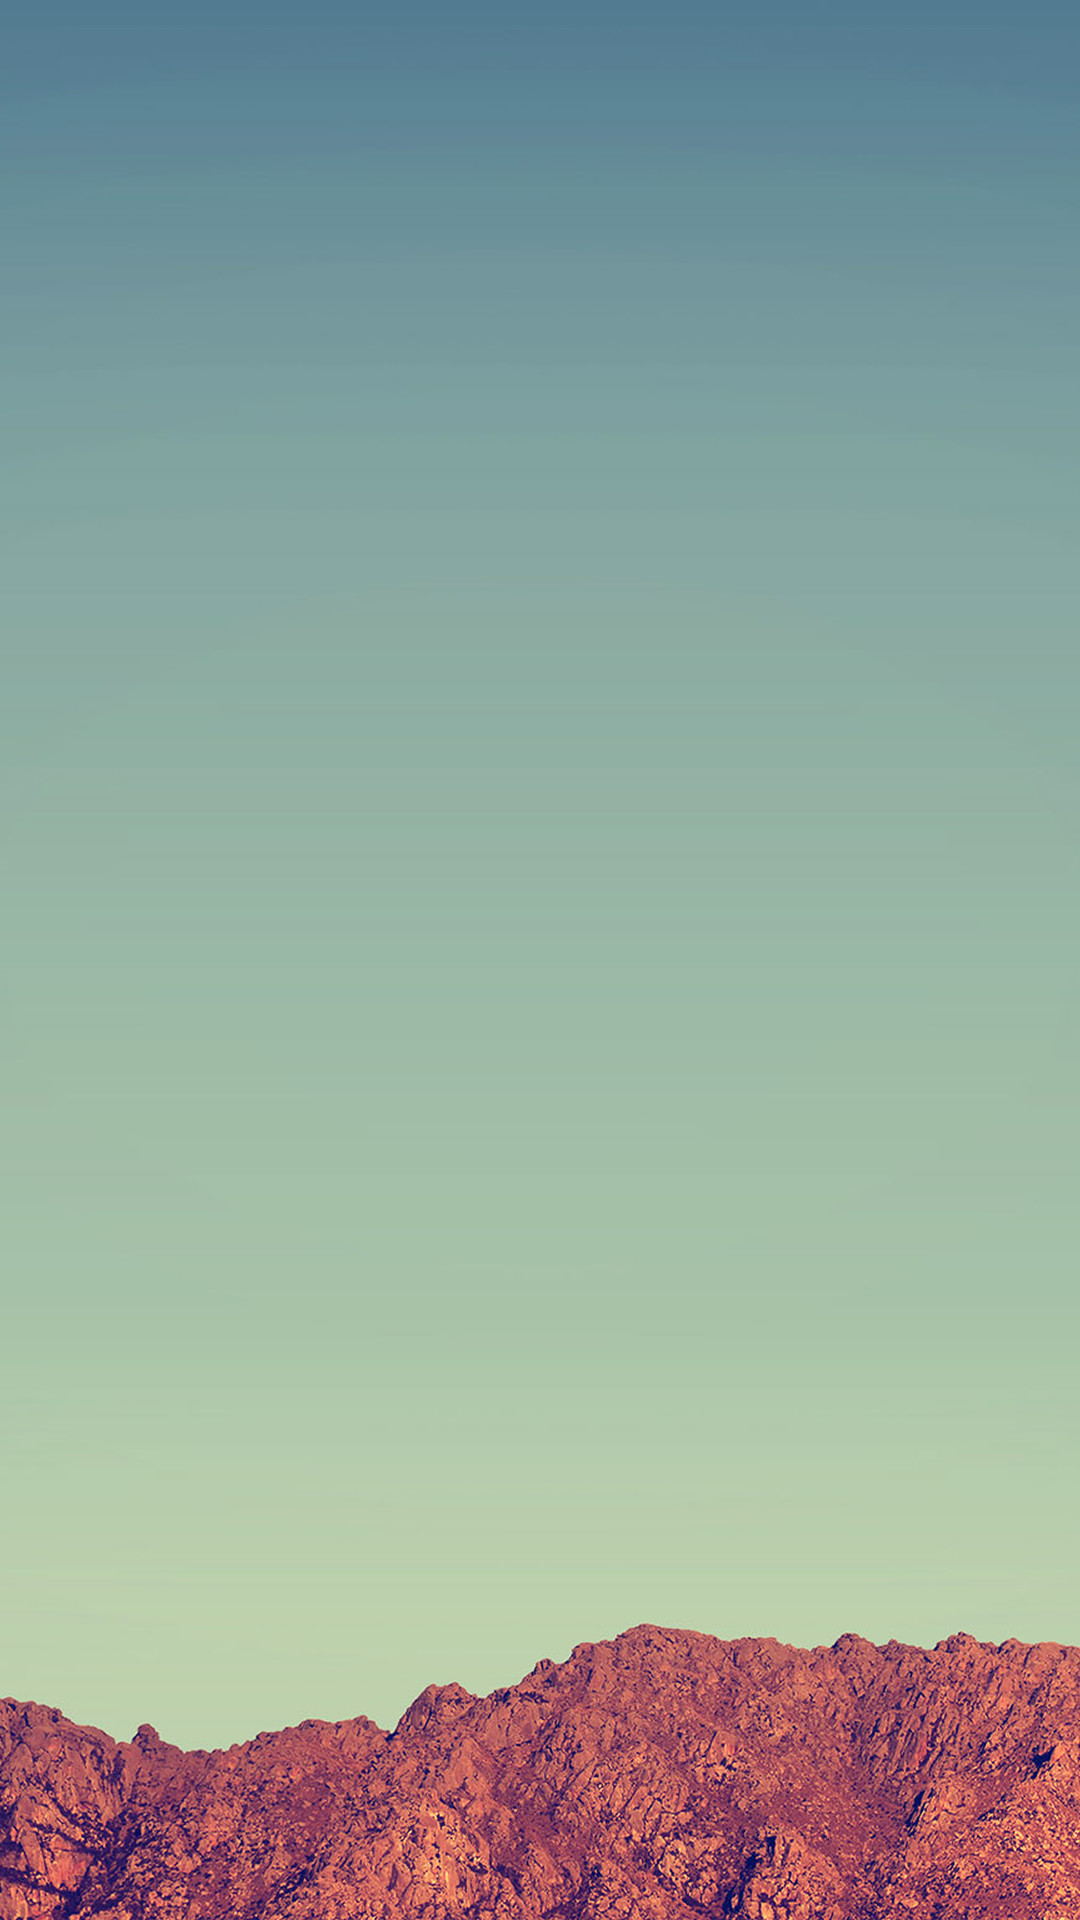 1080x1920 Pure Minimal Rock Mountain Blue Sky #iPhone #7 #wallpaper